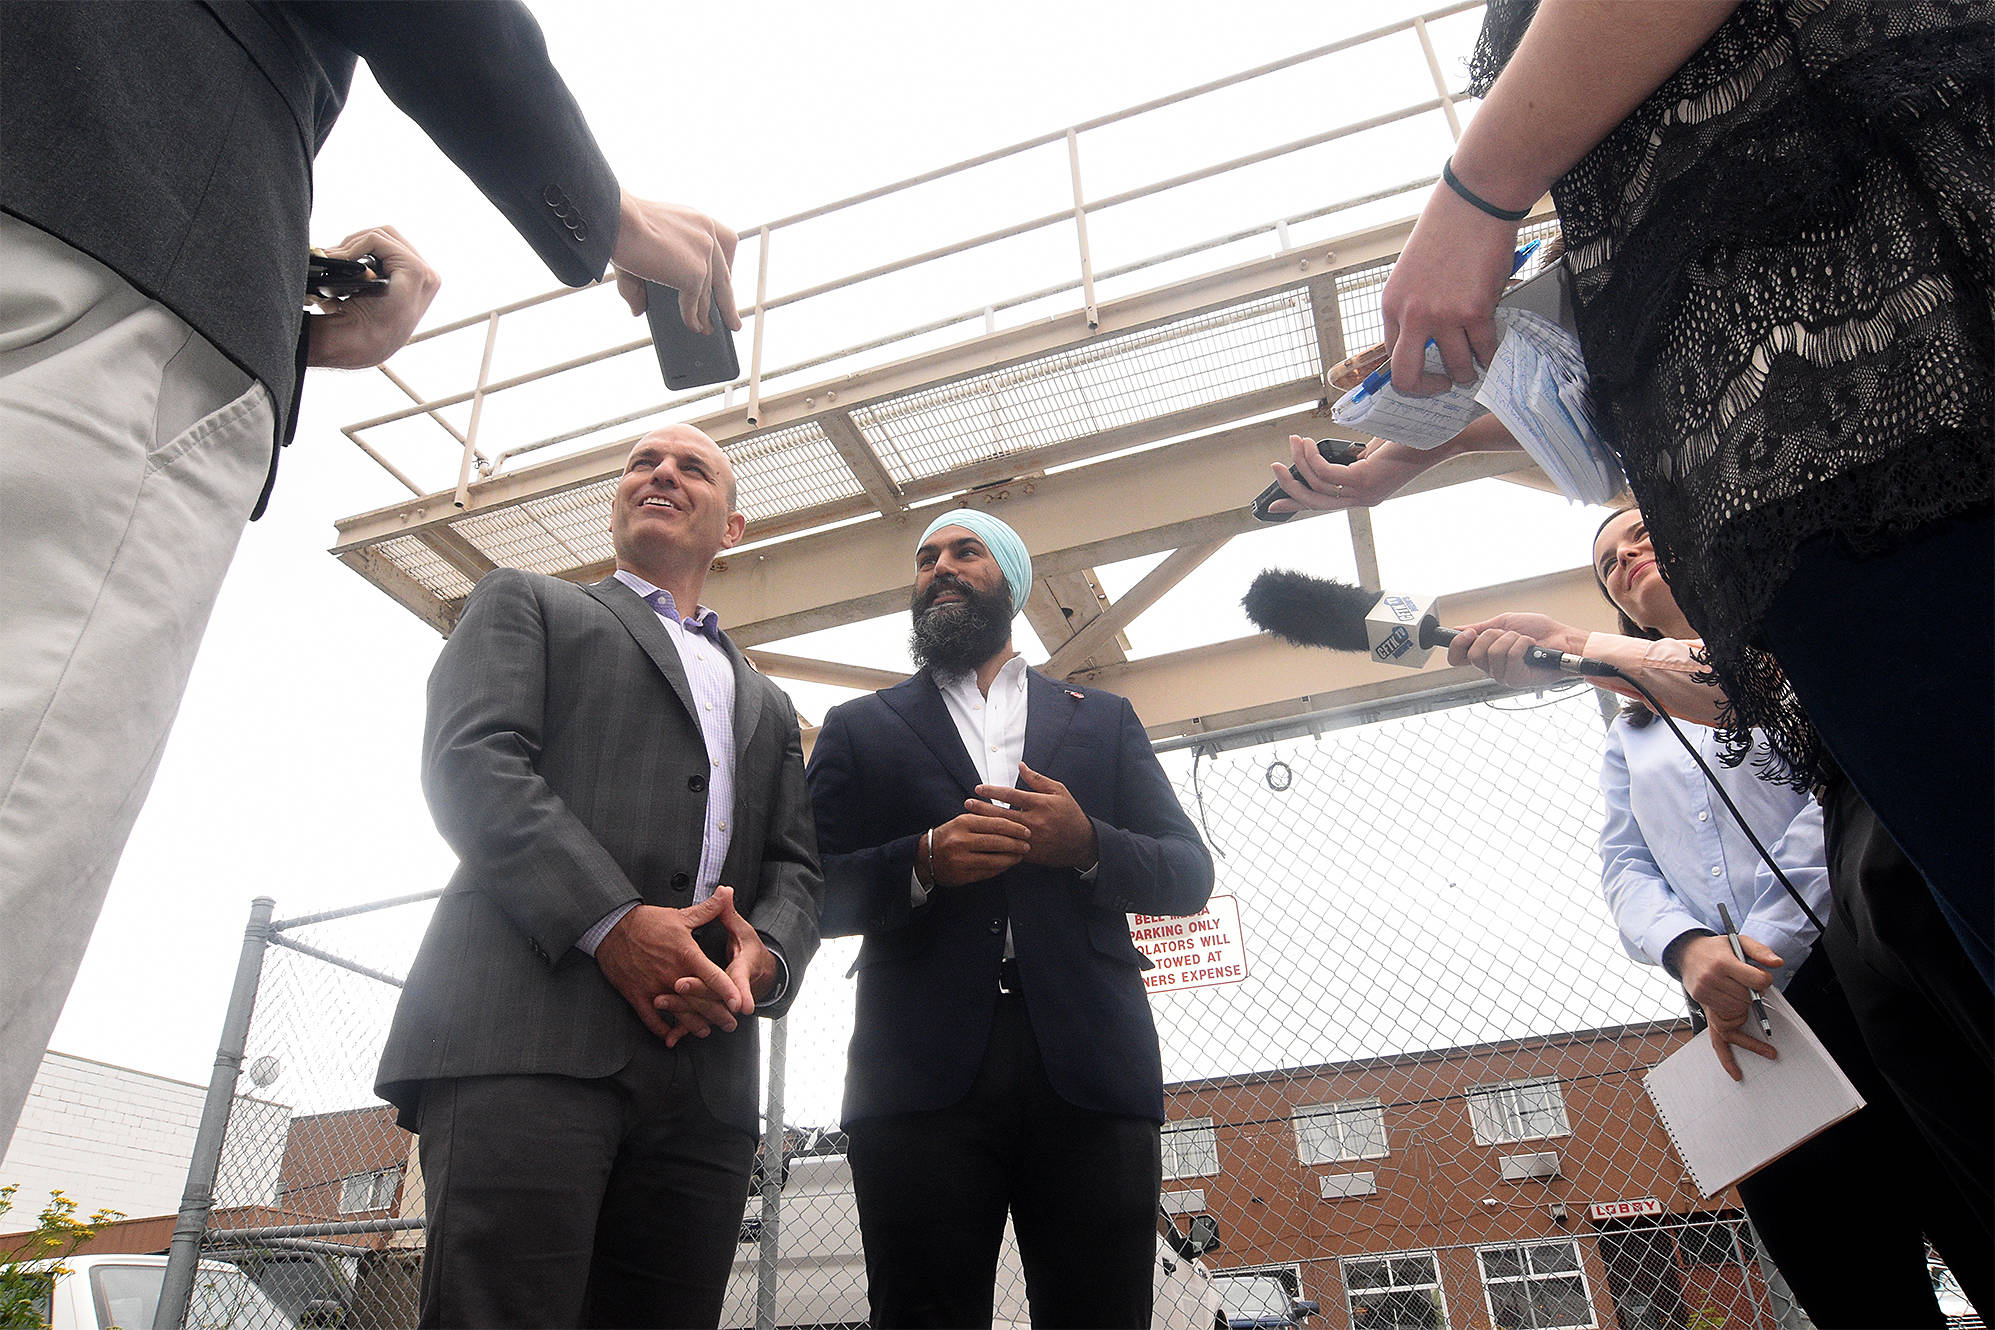 Federal NDP Leader Jagmeet Singh and Skeena-Bulkley Valley NDP MP Nathan Cullen meet with press in Terrace, B.C., during Singh's tour of the Northwest. (Quinn Bender photo)